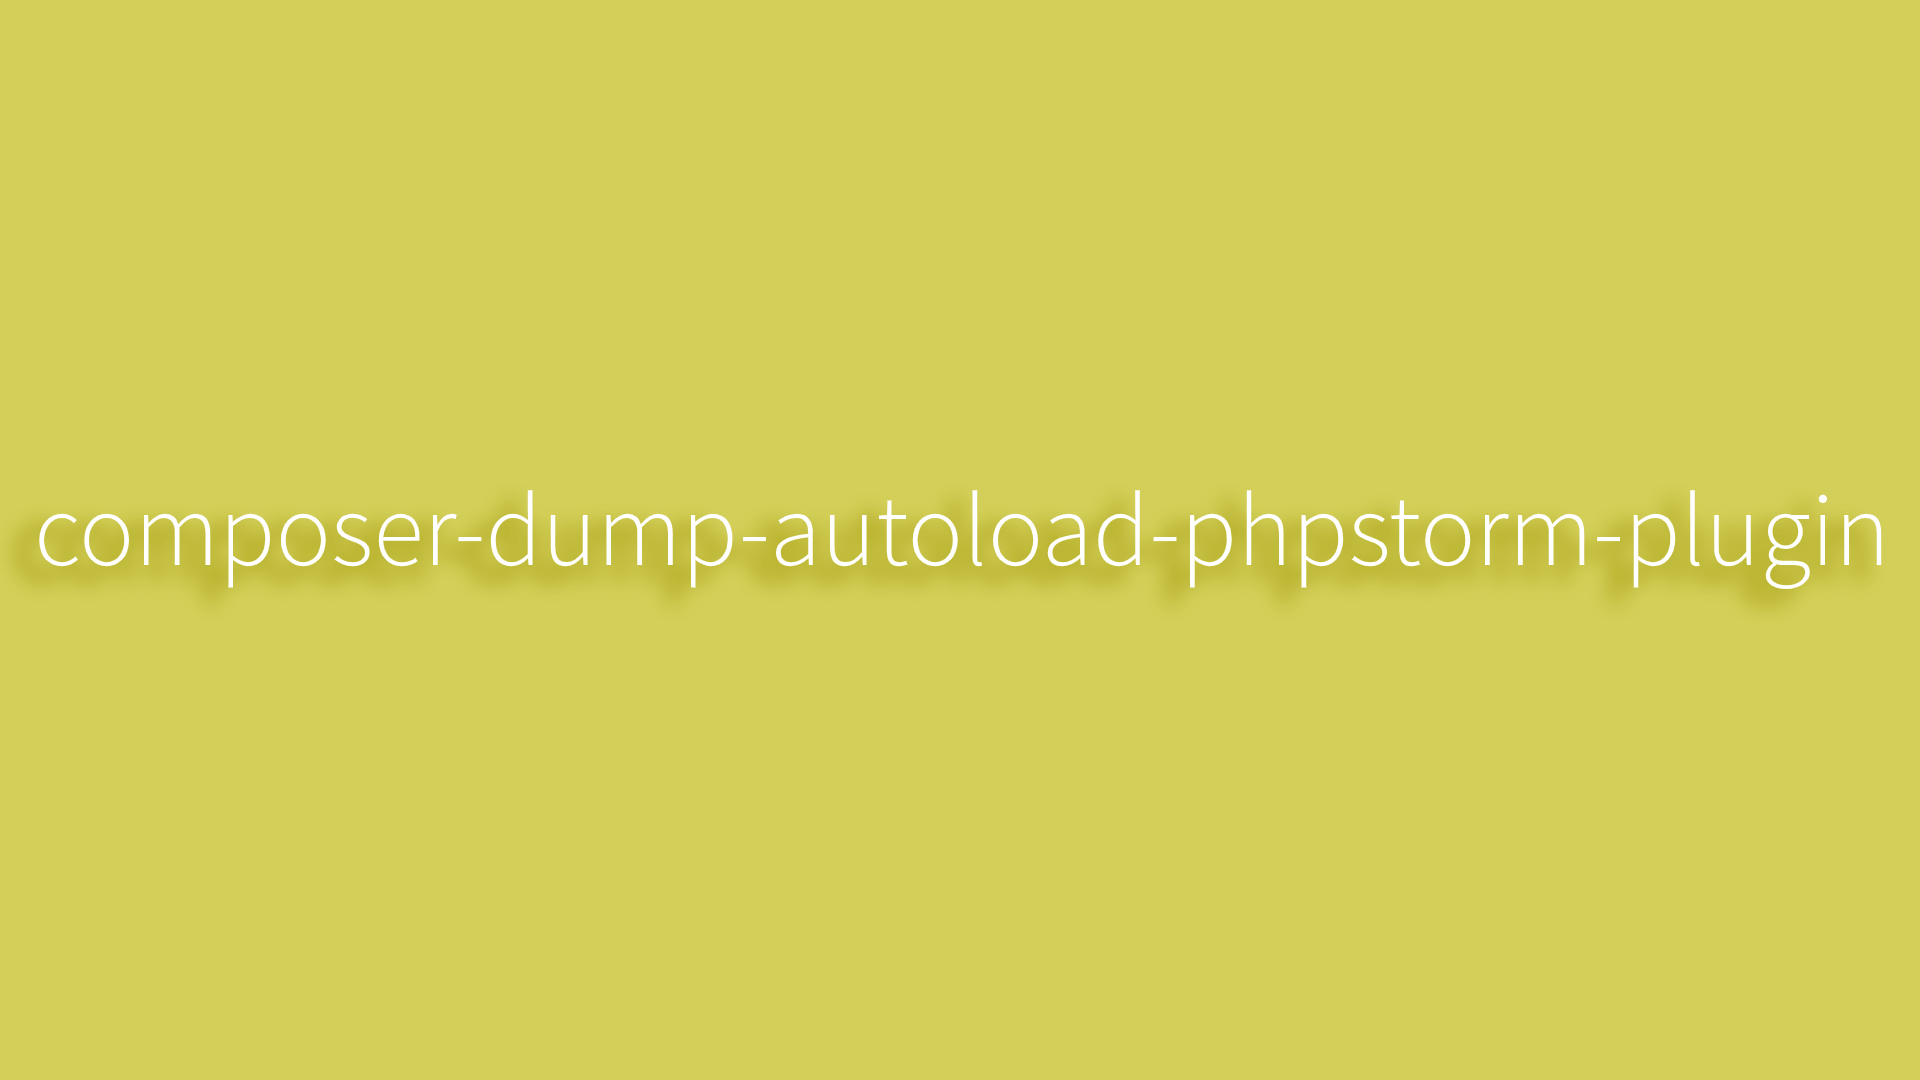 composer-dump-autoload-phpstorm-plugin